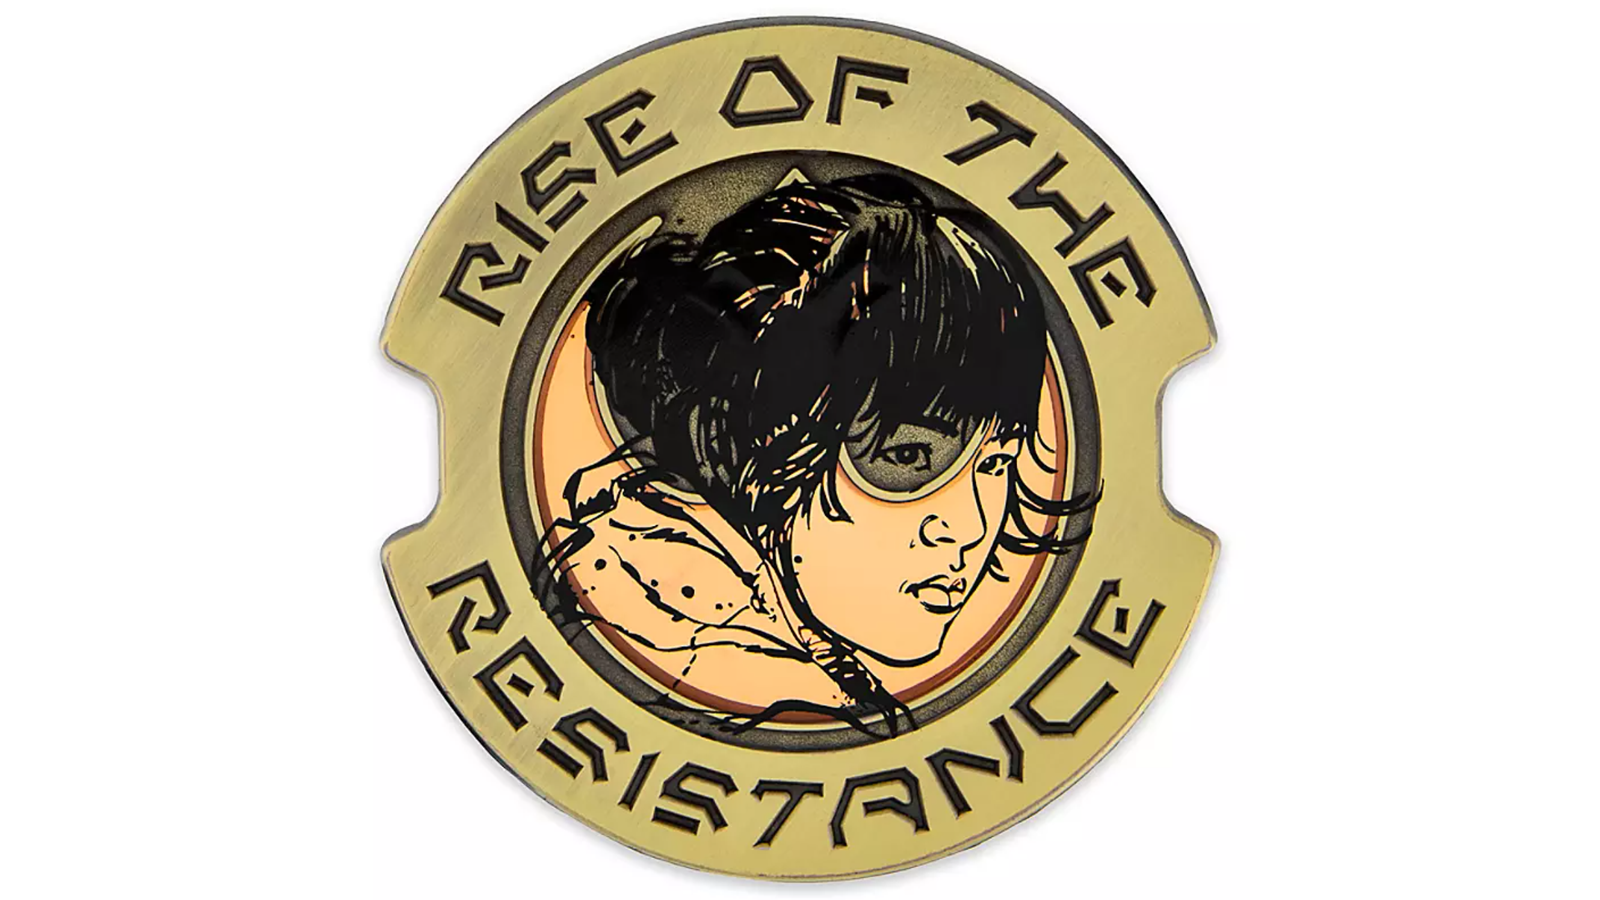 Limited edition rose tico pin